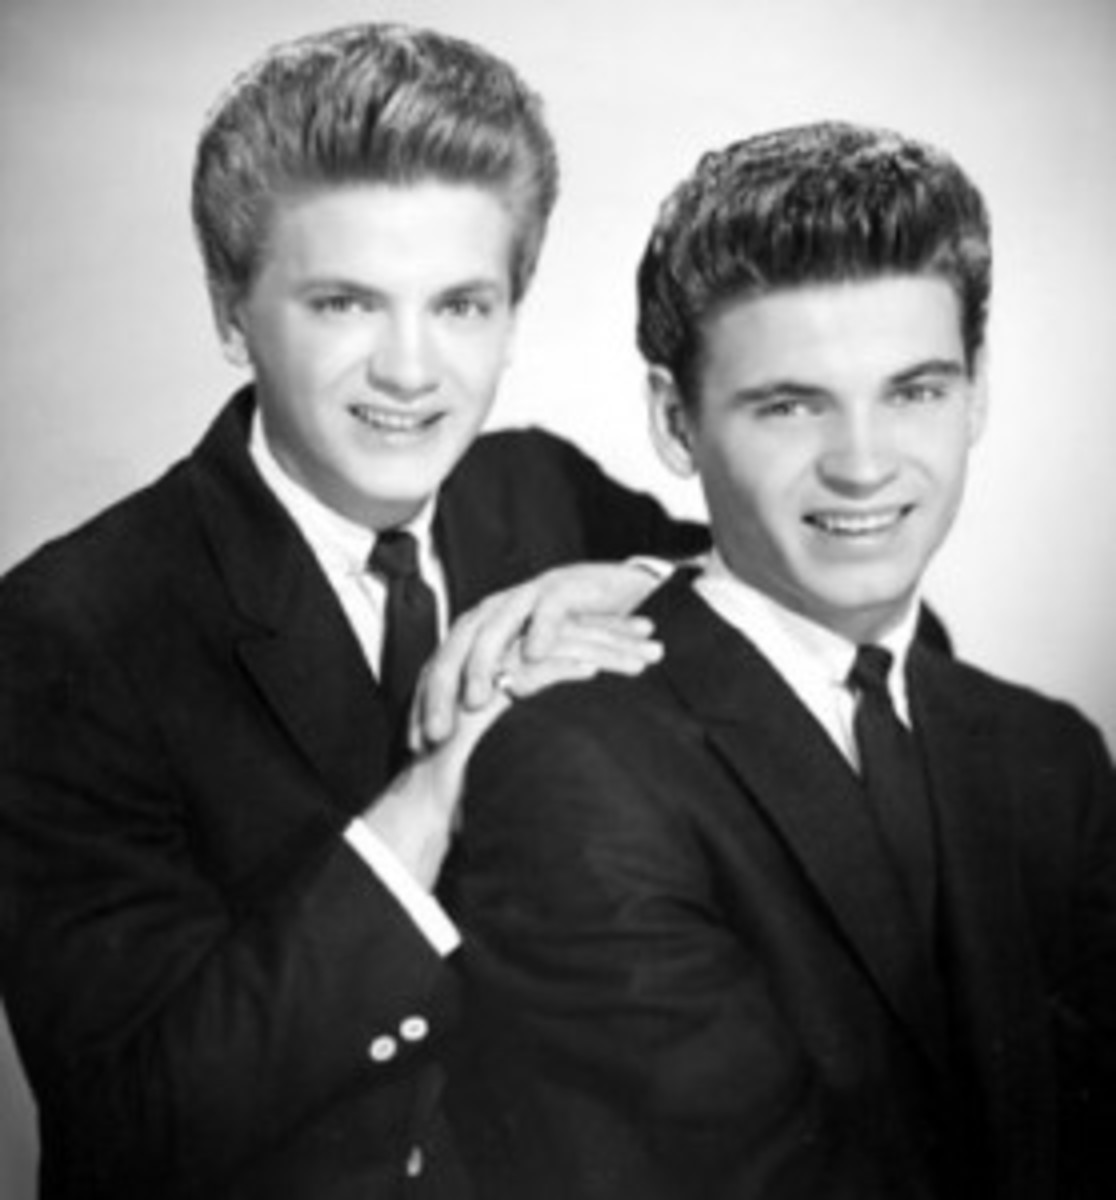 Everly Brothers publicity photo